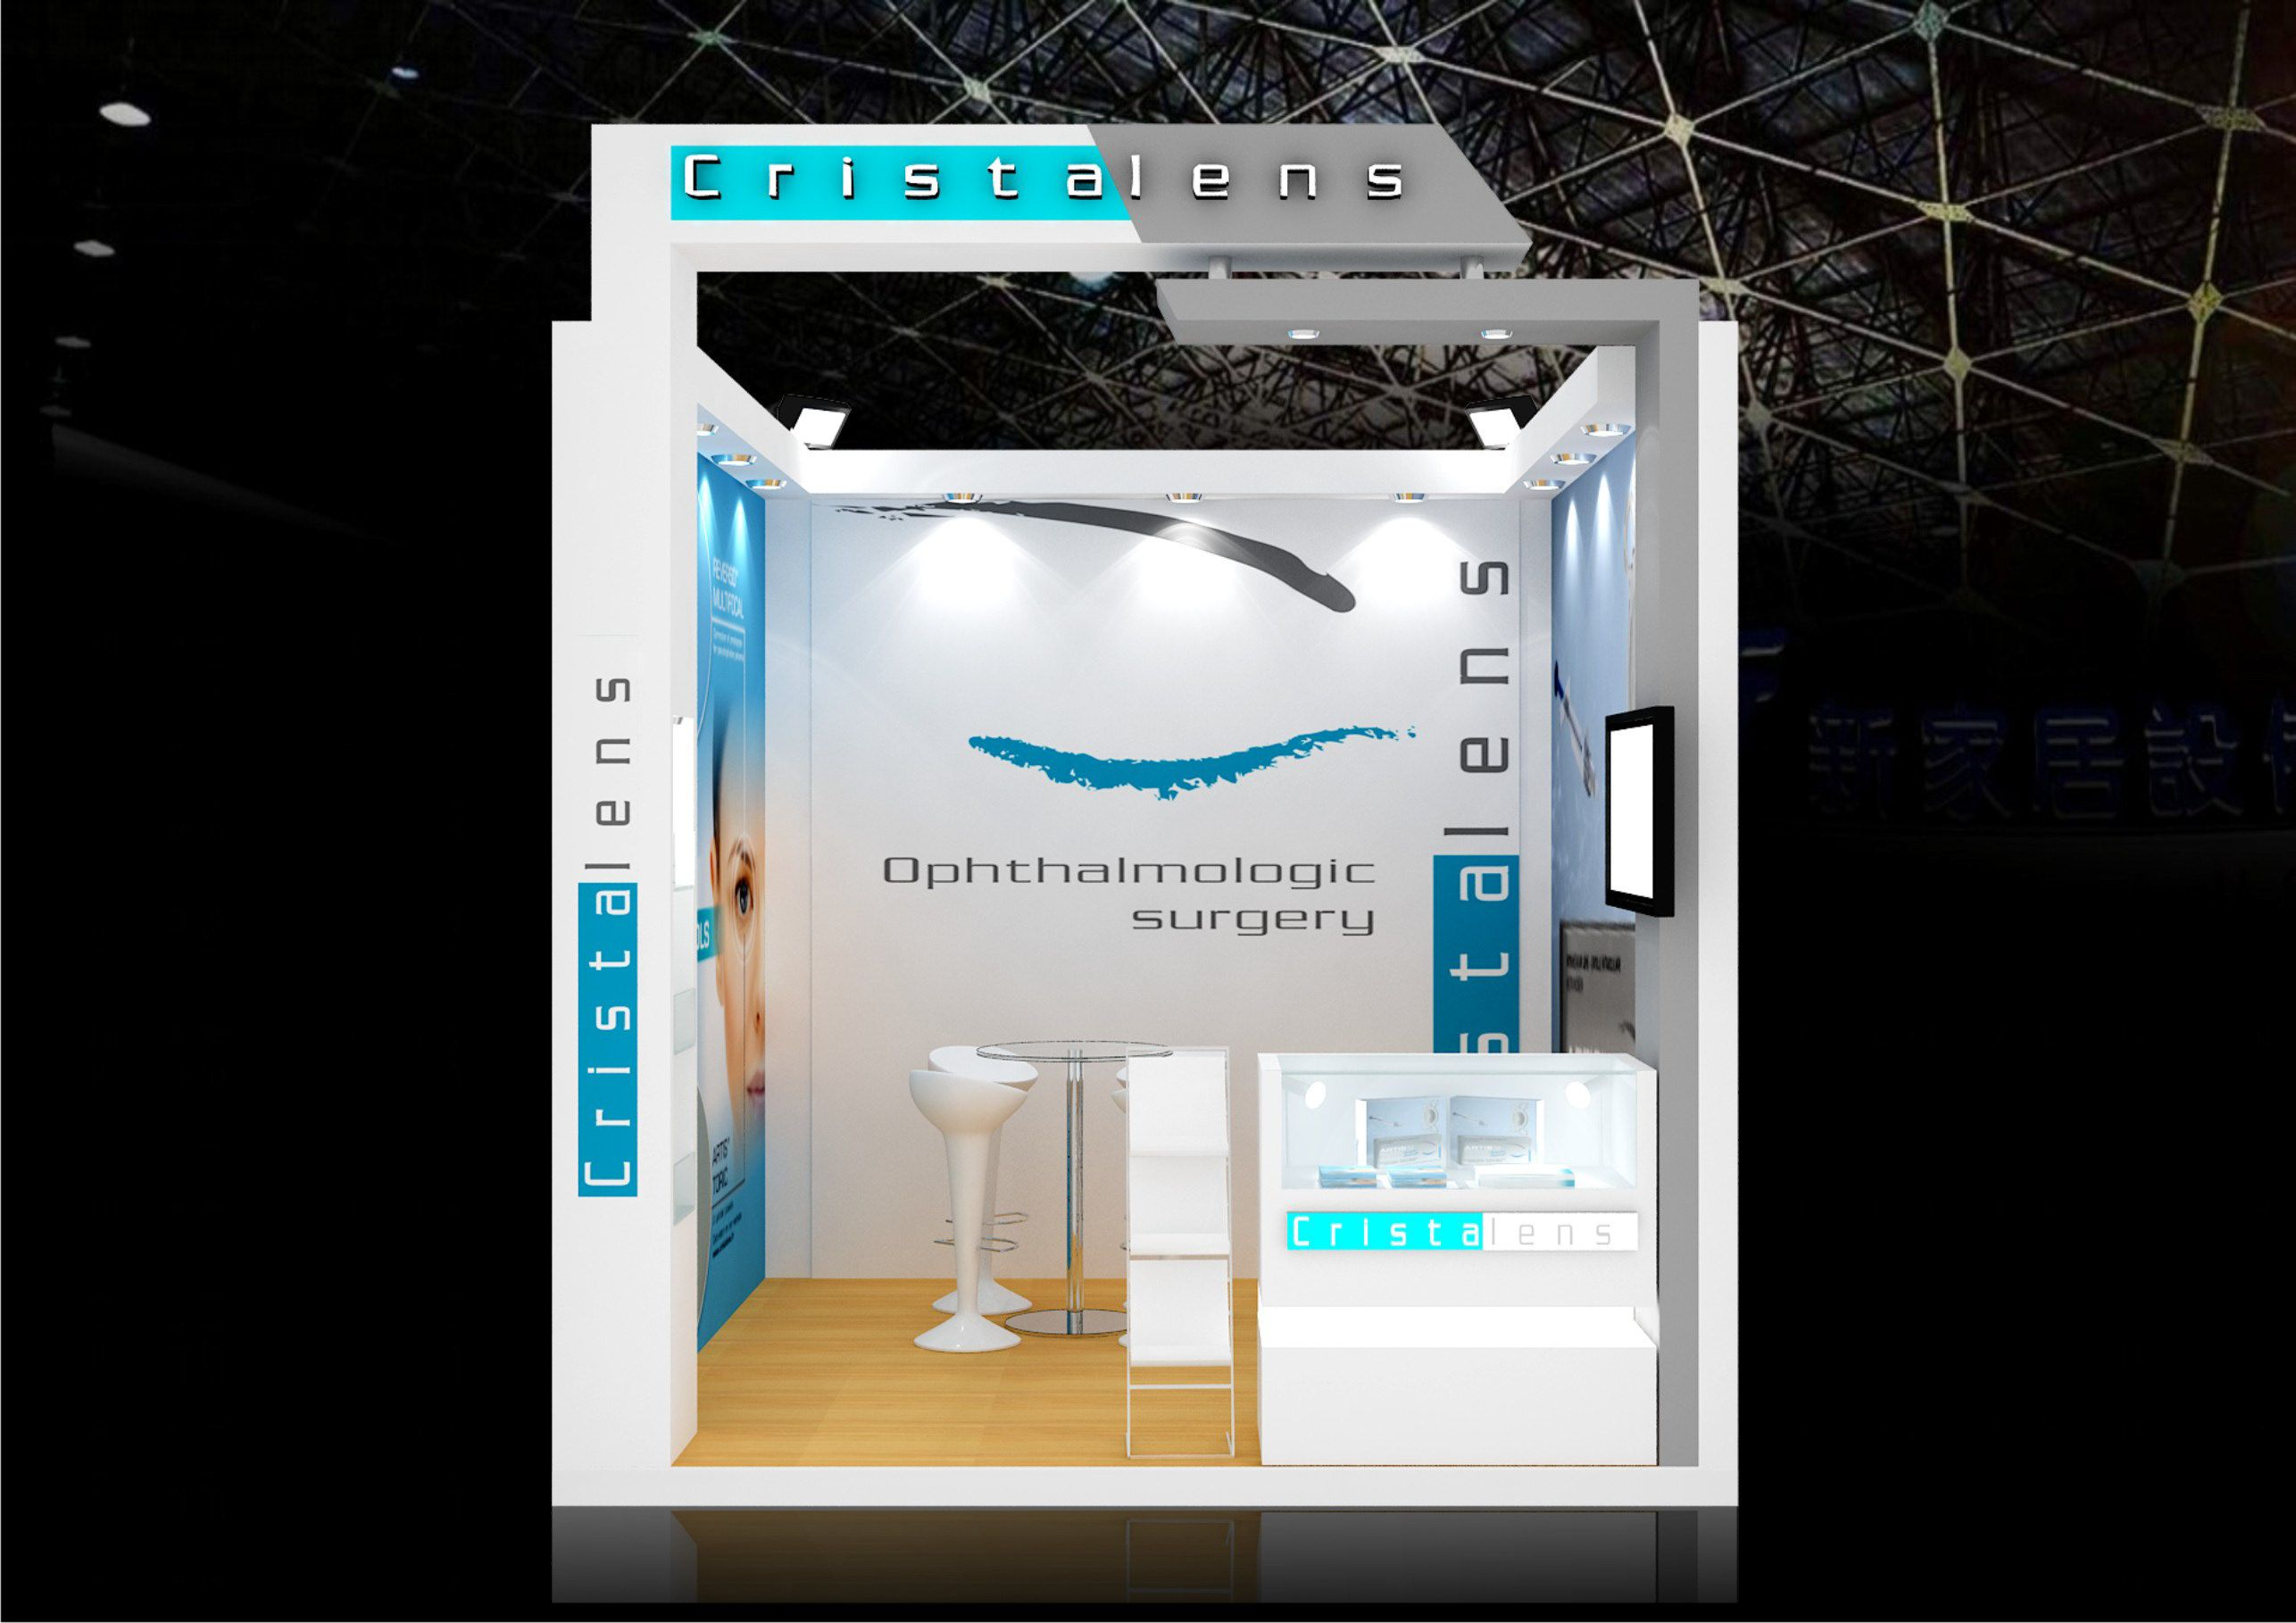 Exhibition Stall Design 3x3 : Pin by denny yusuf on exhibition design exhibition booth design